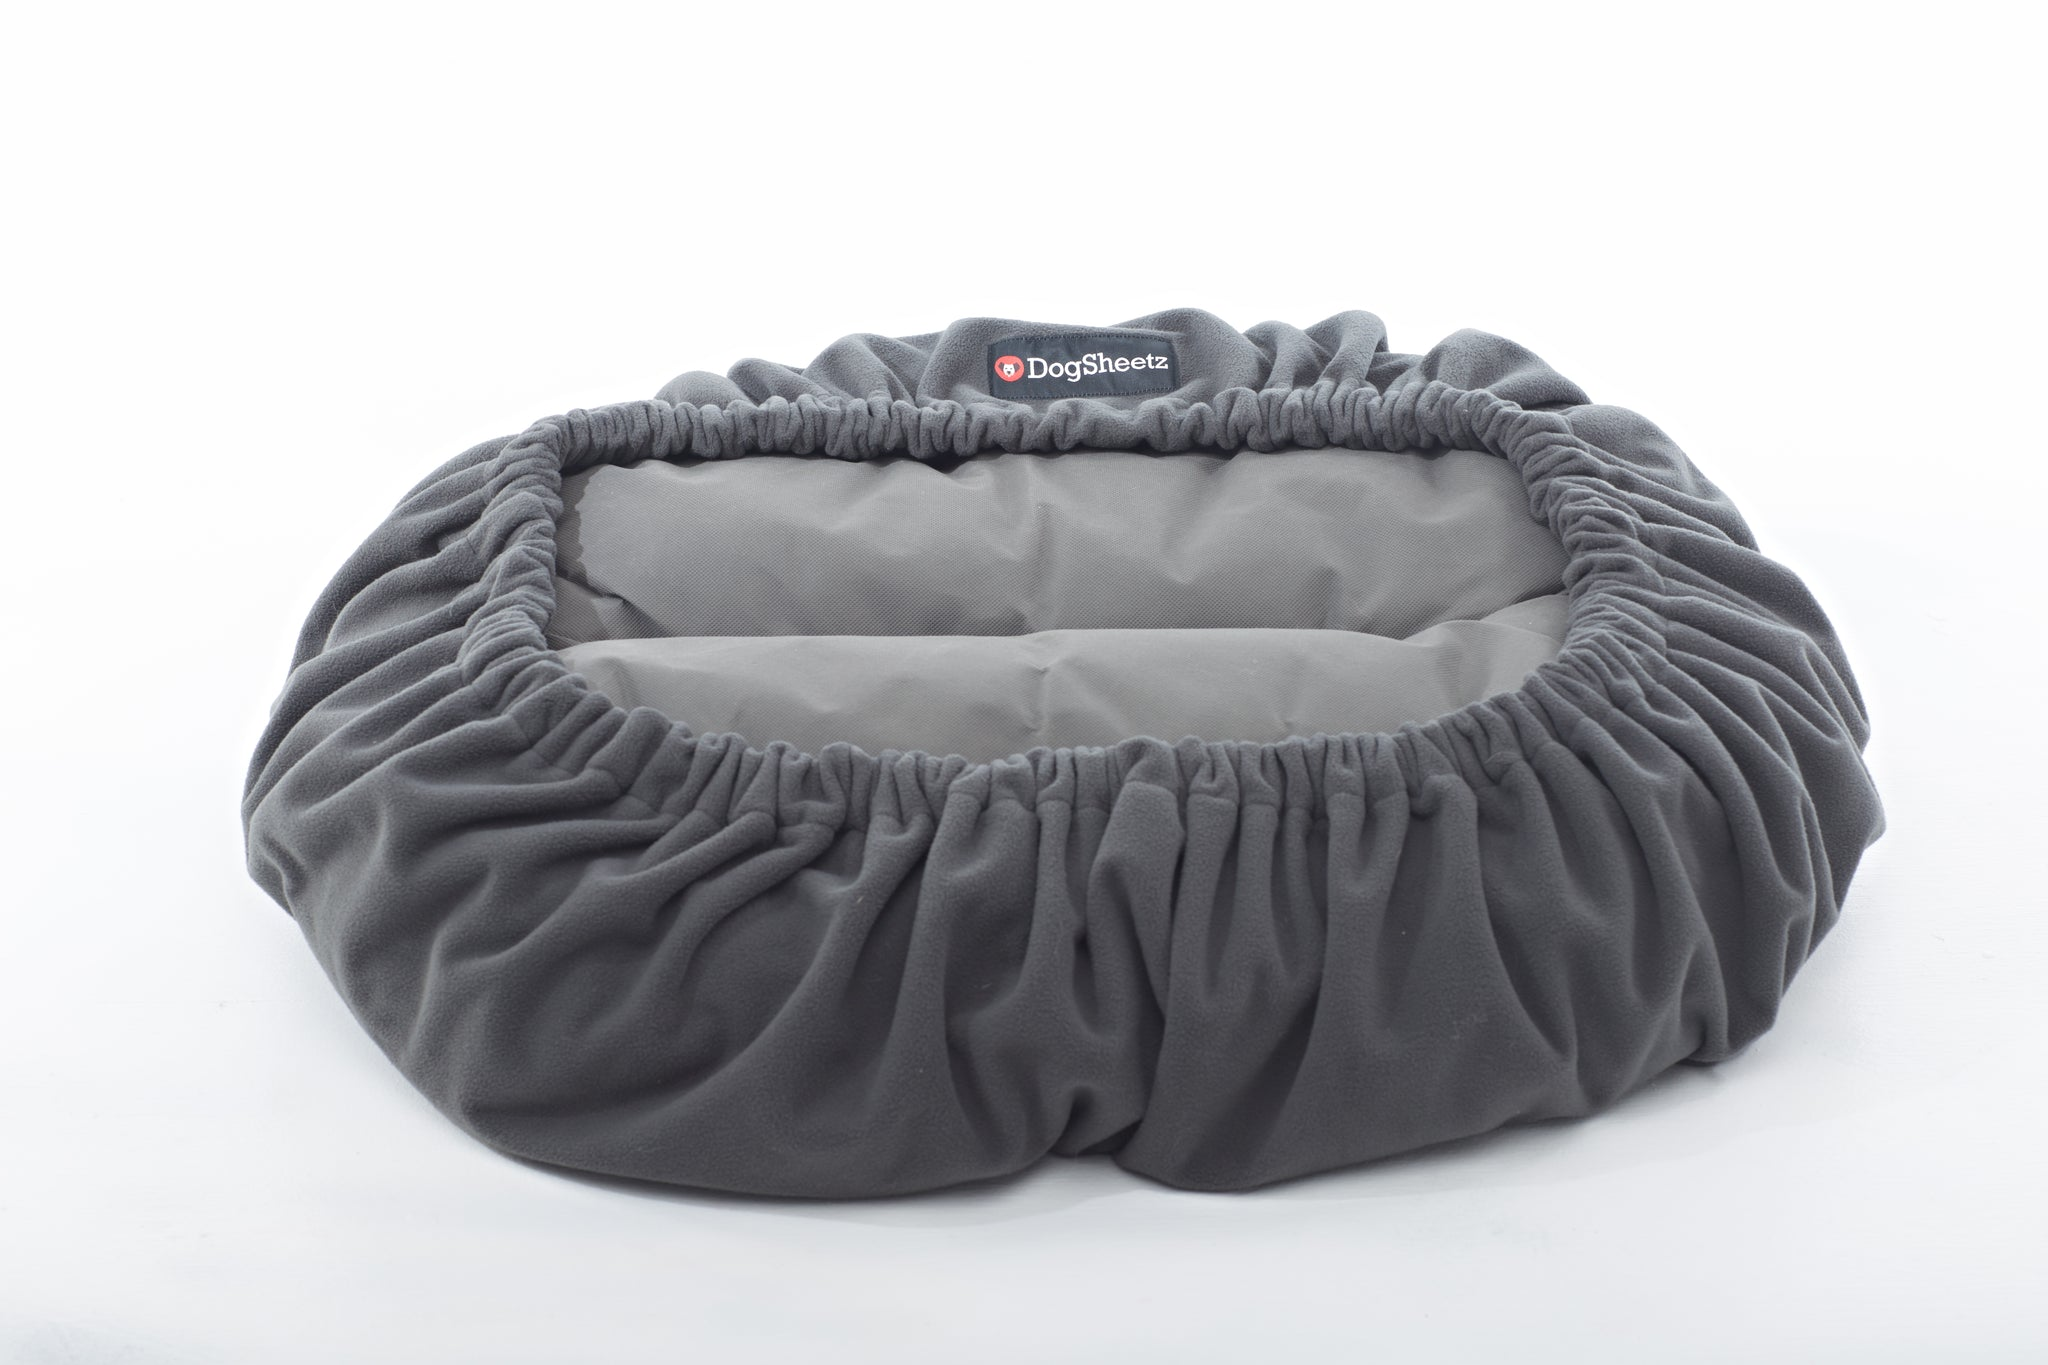 Admirable Dogsheetz Waterproof Dog Bed Cover Really Good Pets Shop Creativecarmelina Interior Chair Design Creativecarmelinacom